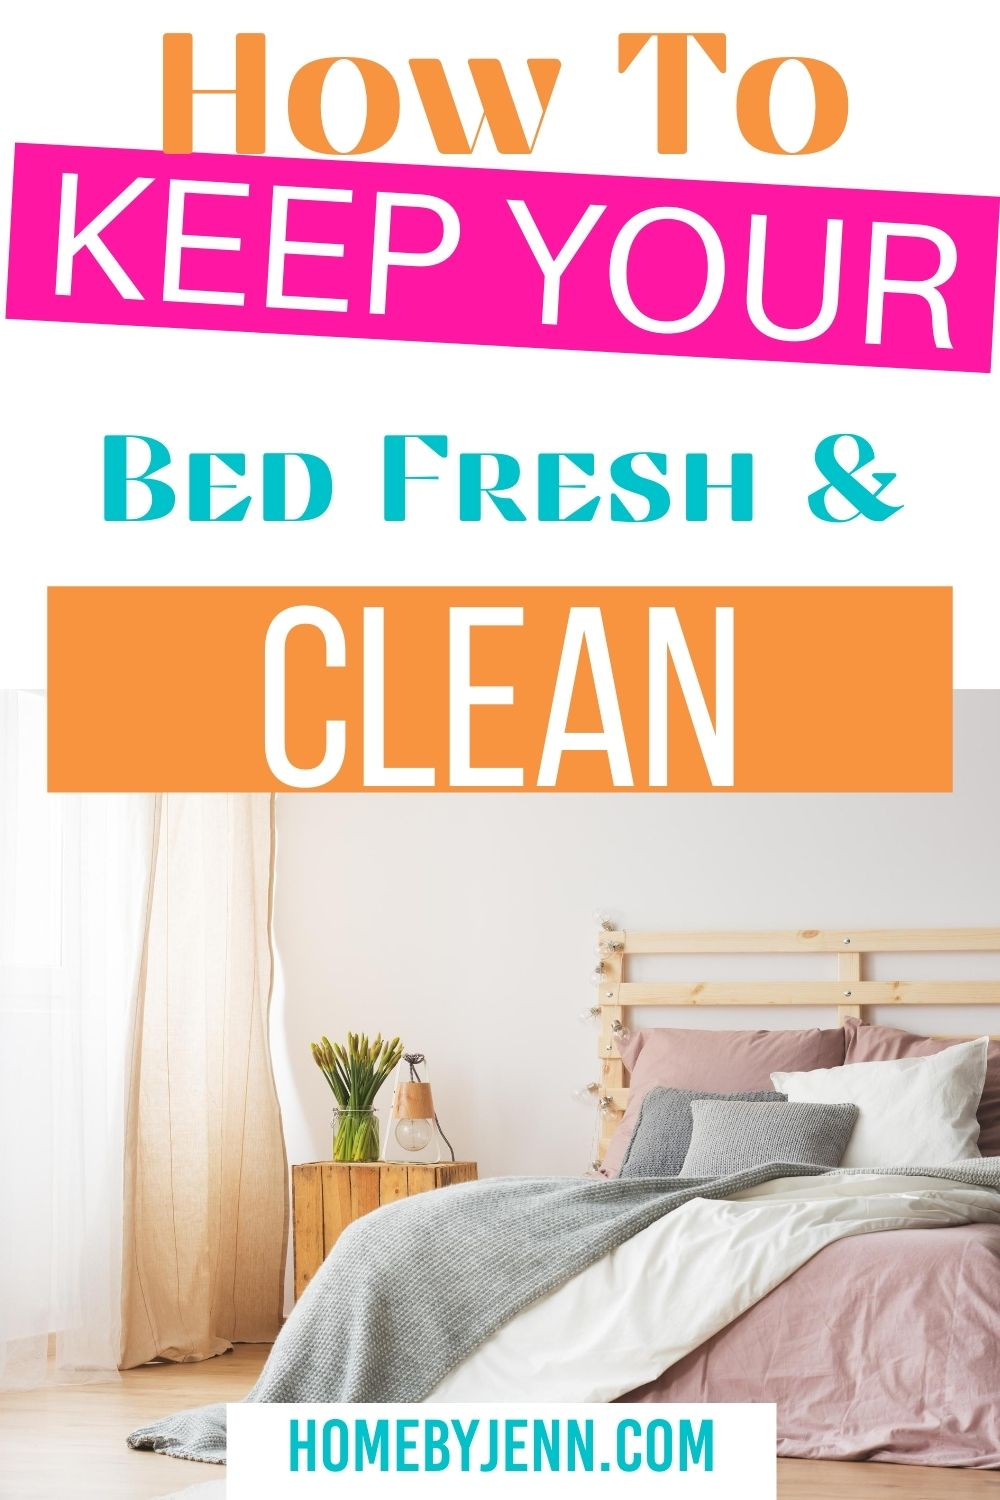 Keeping your bed smelling fresh and clean is important for a good night's sleep. Learn how to keep your bed fresh and clean with these simple tips. via @homebyjenn